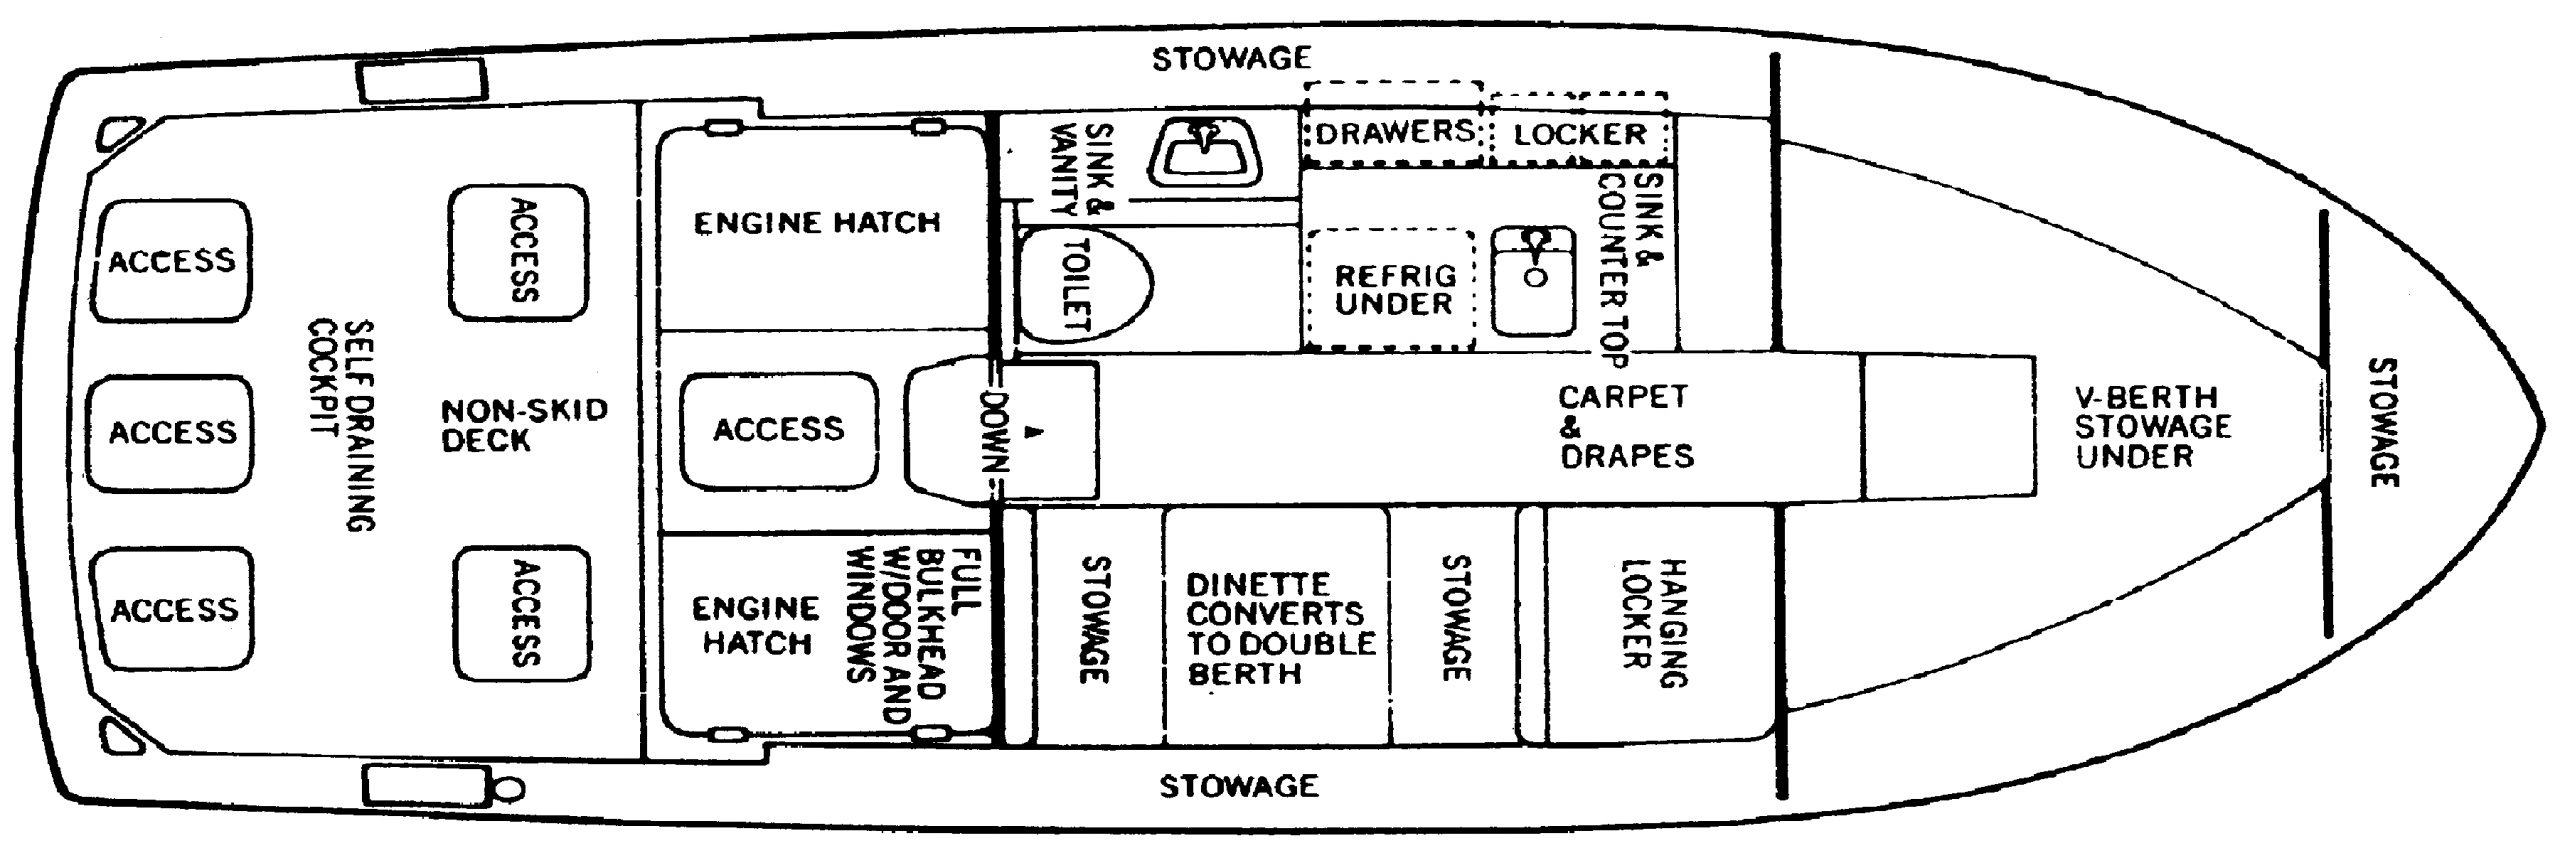 28 Flybridge Cruiser Floor Plan 2